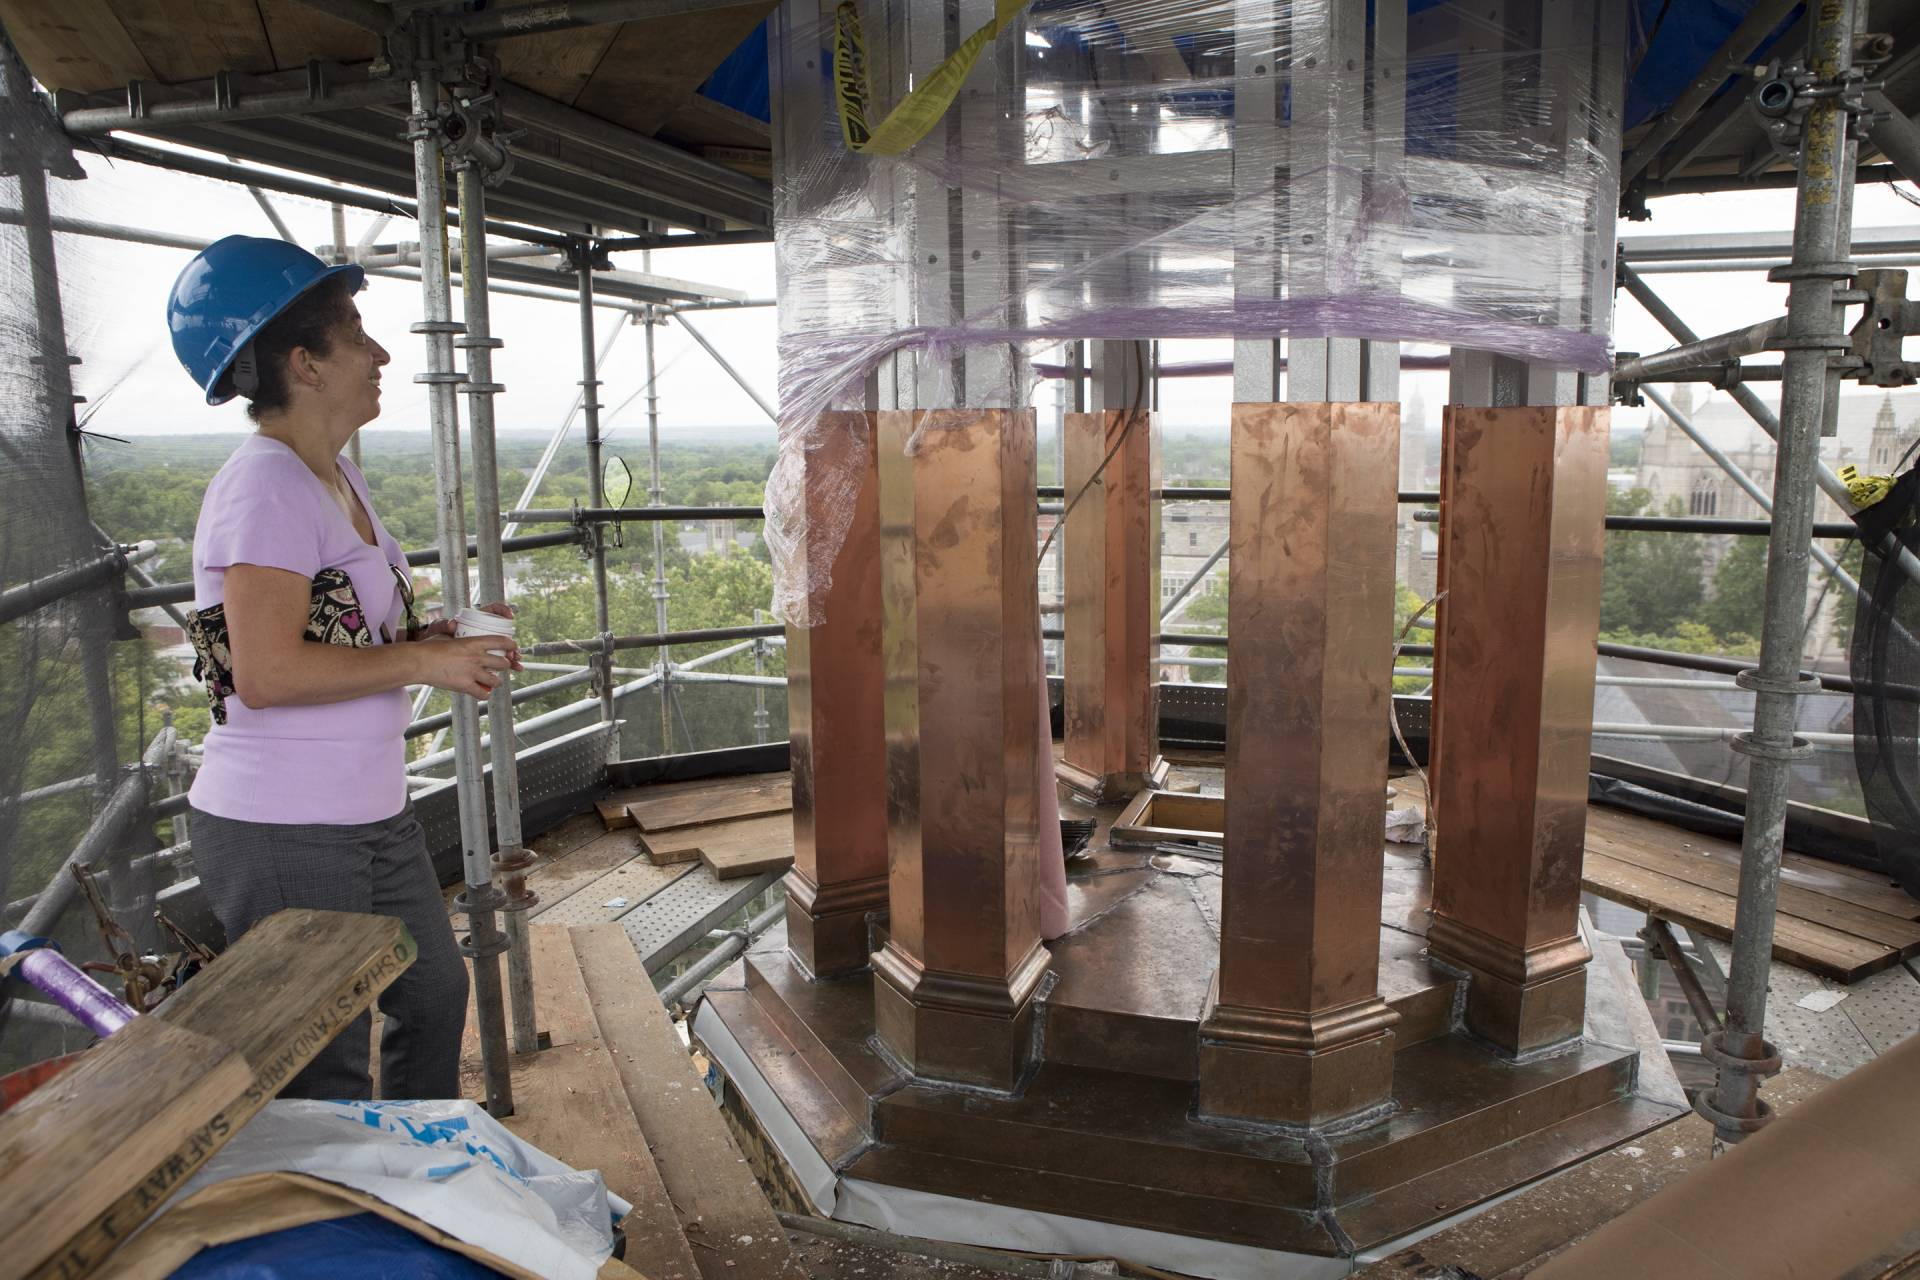 Alexis Mutschler working on the Cupola Restoration Project, atop Nassau Hall